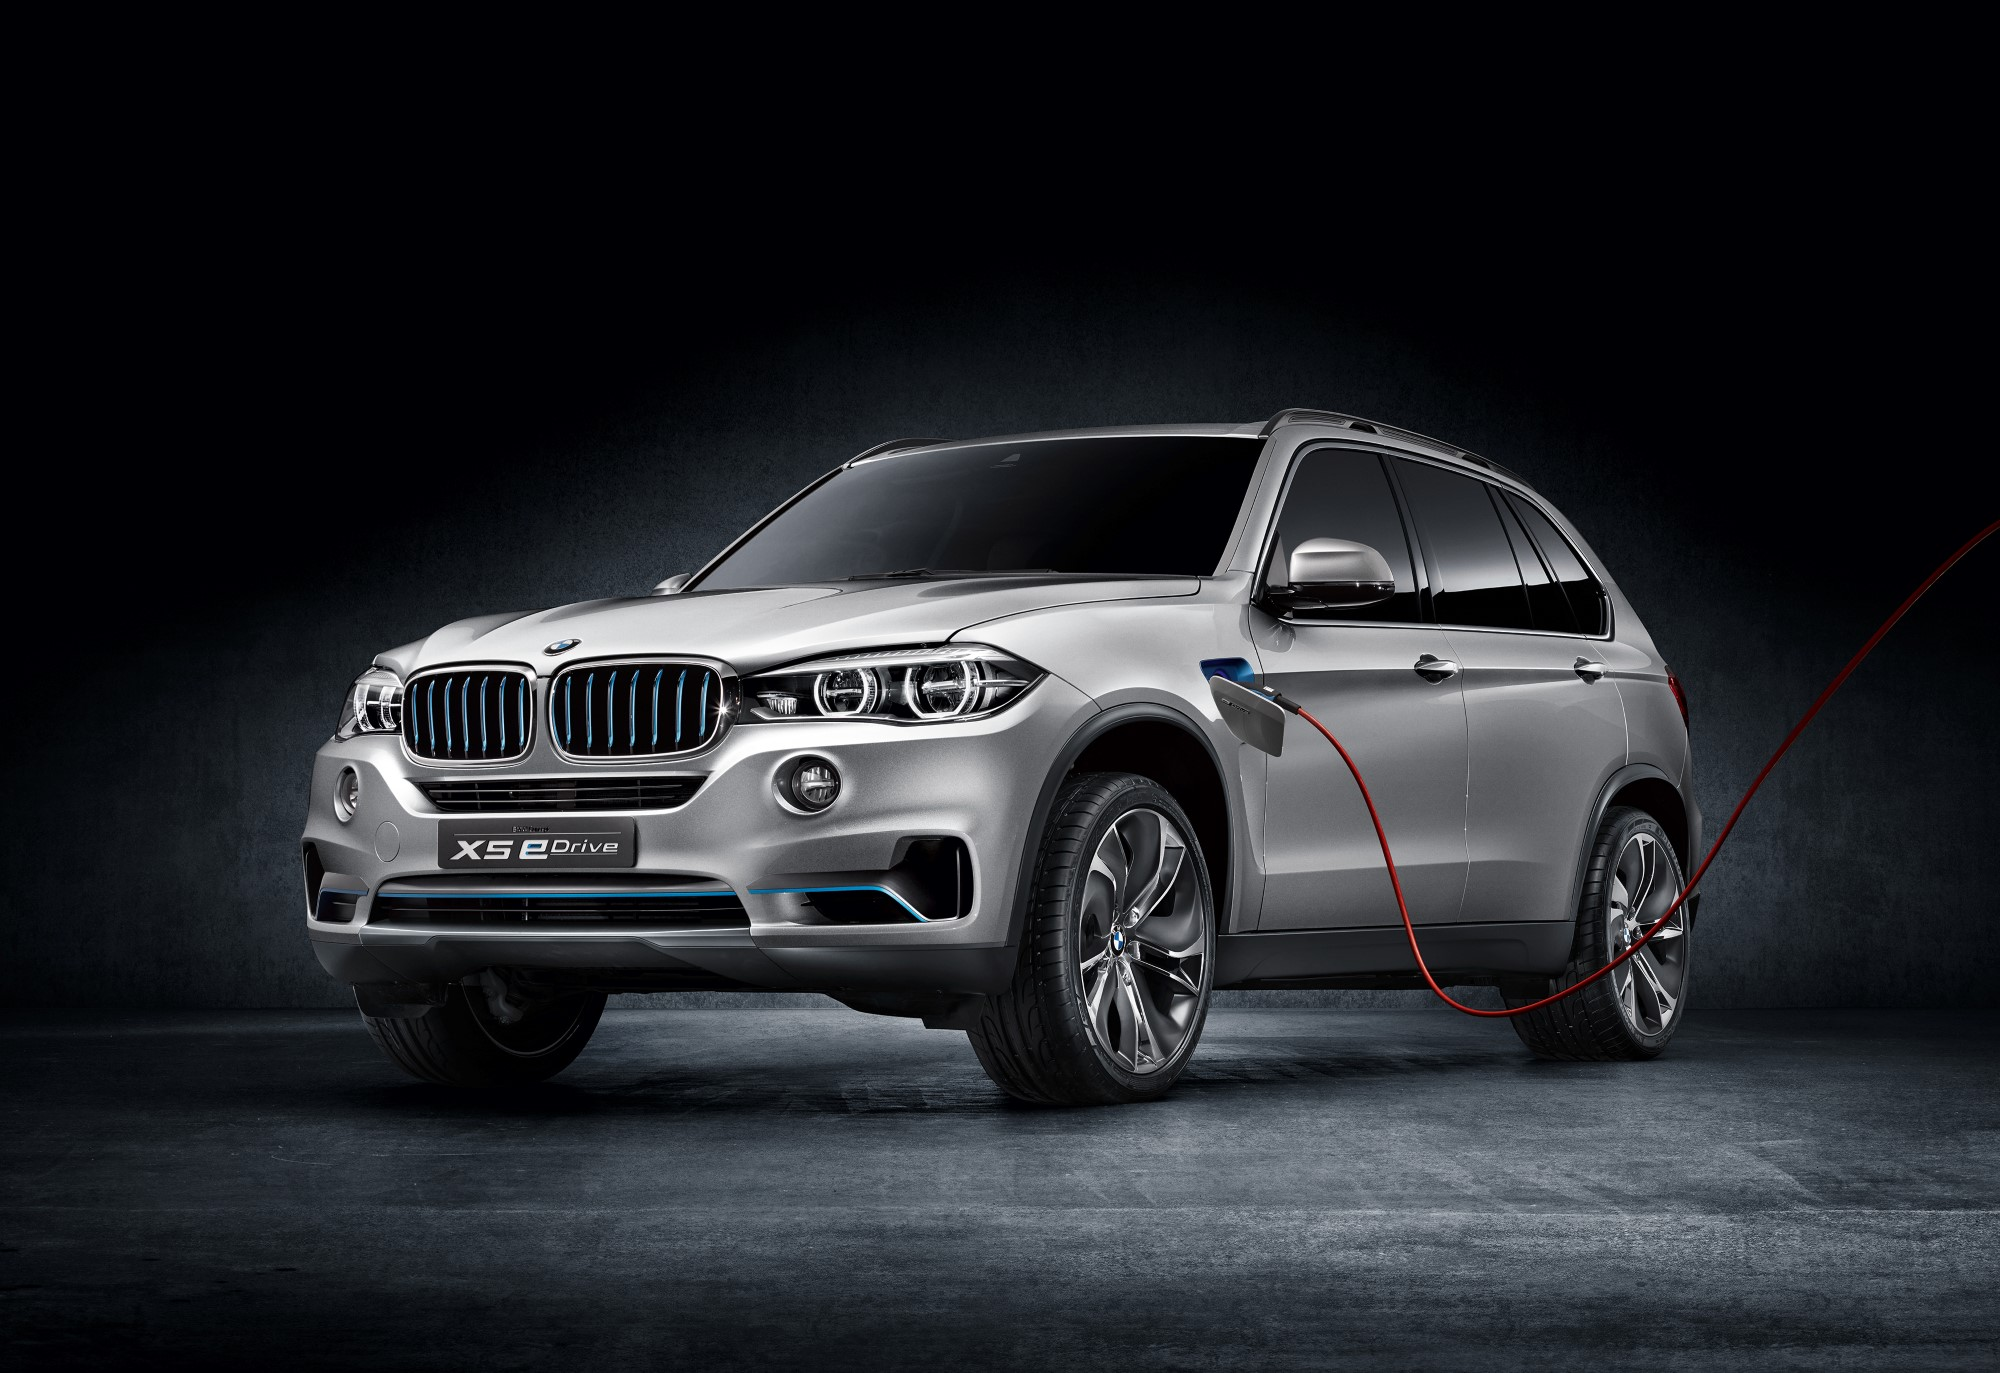 Bmw Concept X5 Edrive To S Production Plug In Hybrid Suv Report